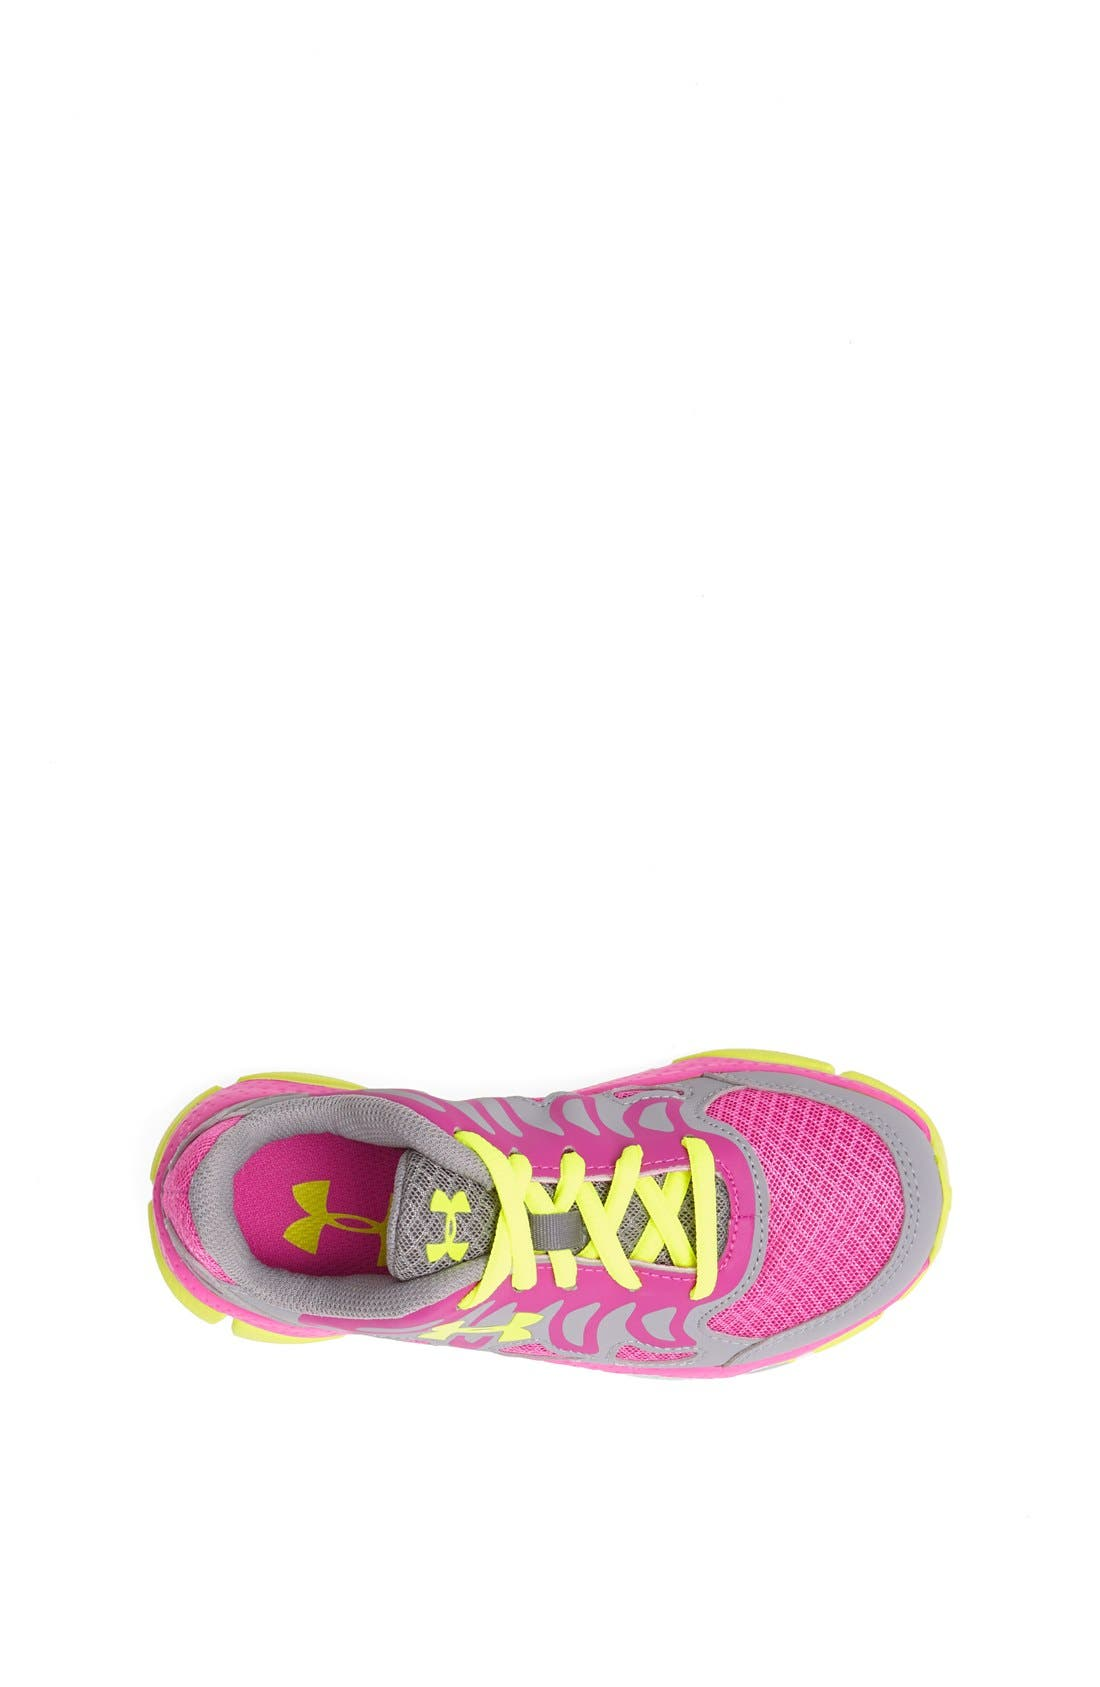 Alternate Image 3  - Under Armour 'Engage' Running Shoe (Toddler & Little Kid)